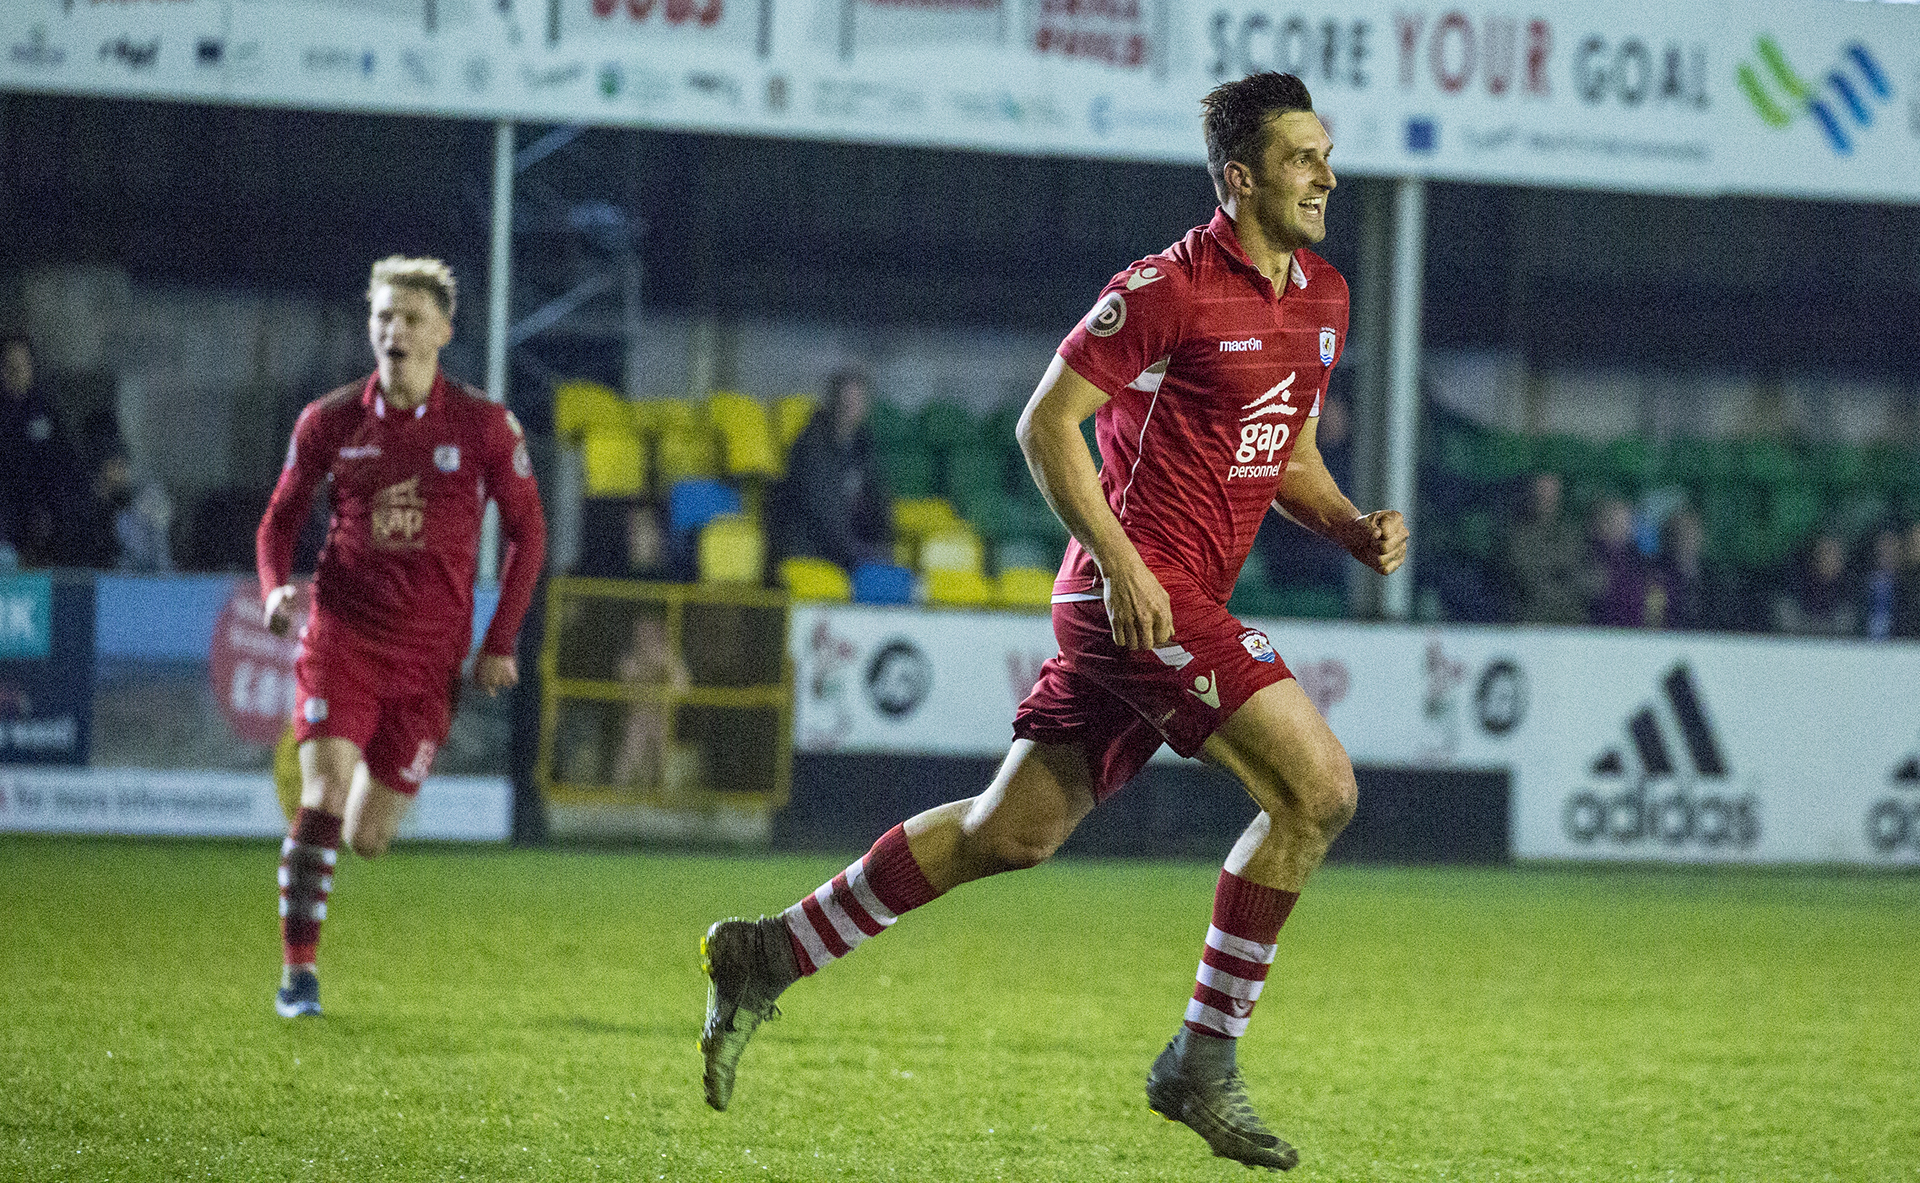 Andy Owens celebrates his second strike against Bangor City - © NCM Media